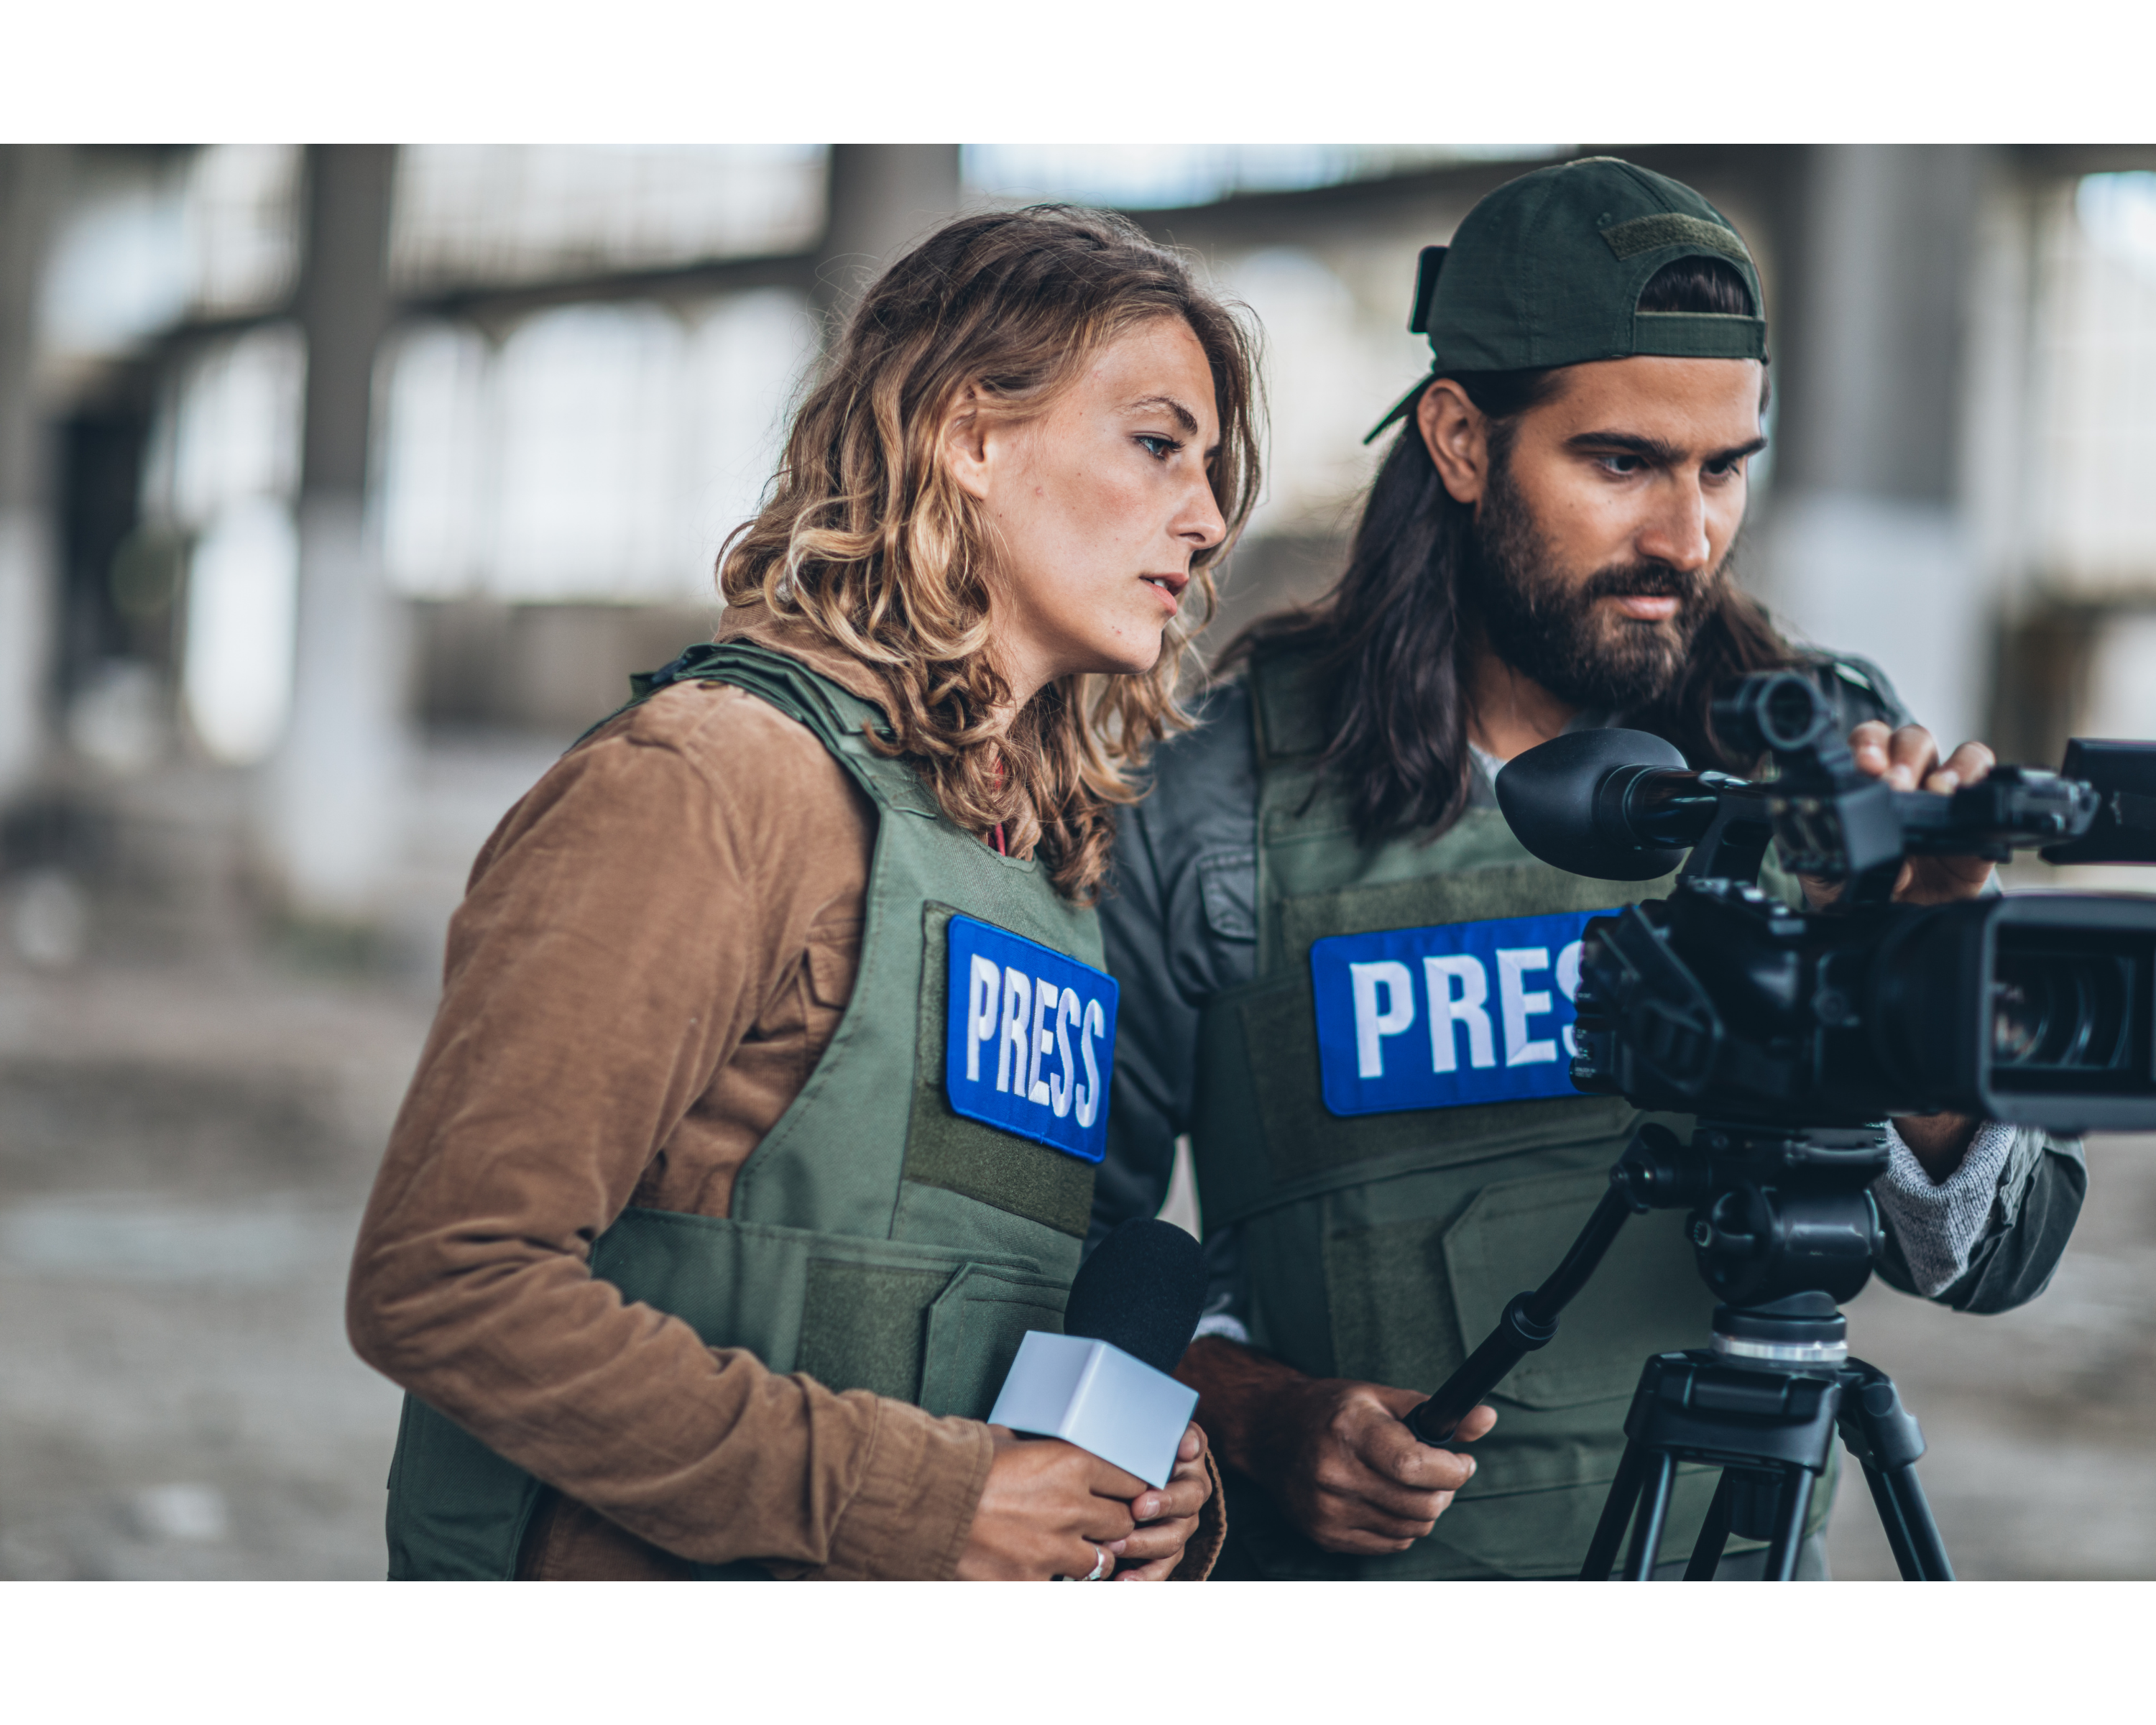 Two journalists prepare a broadcast from the street wearing vests that say Press.